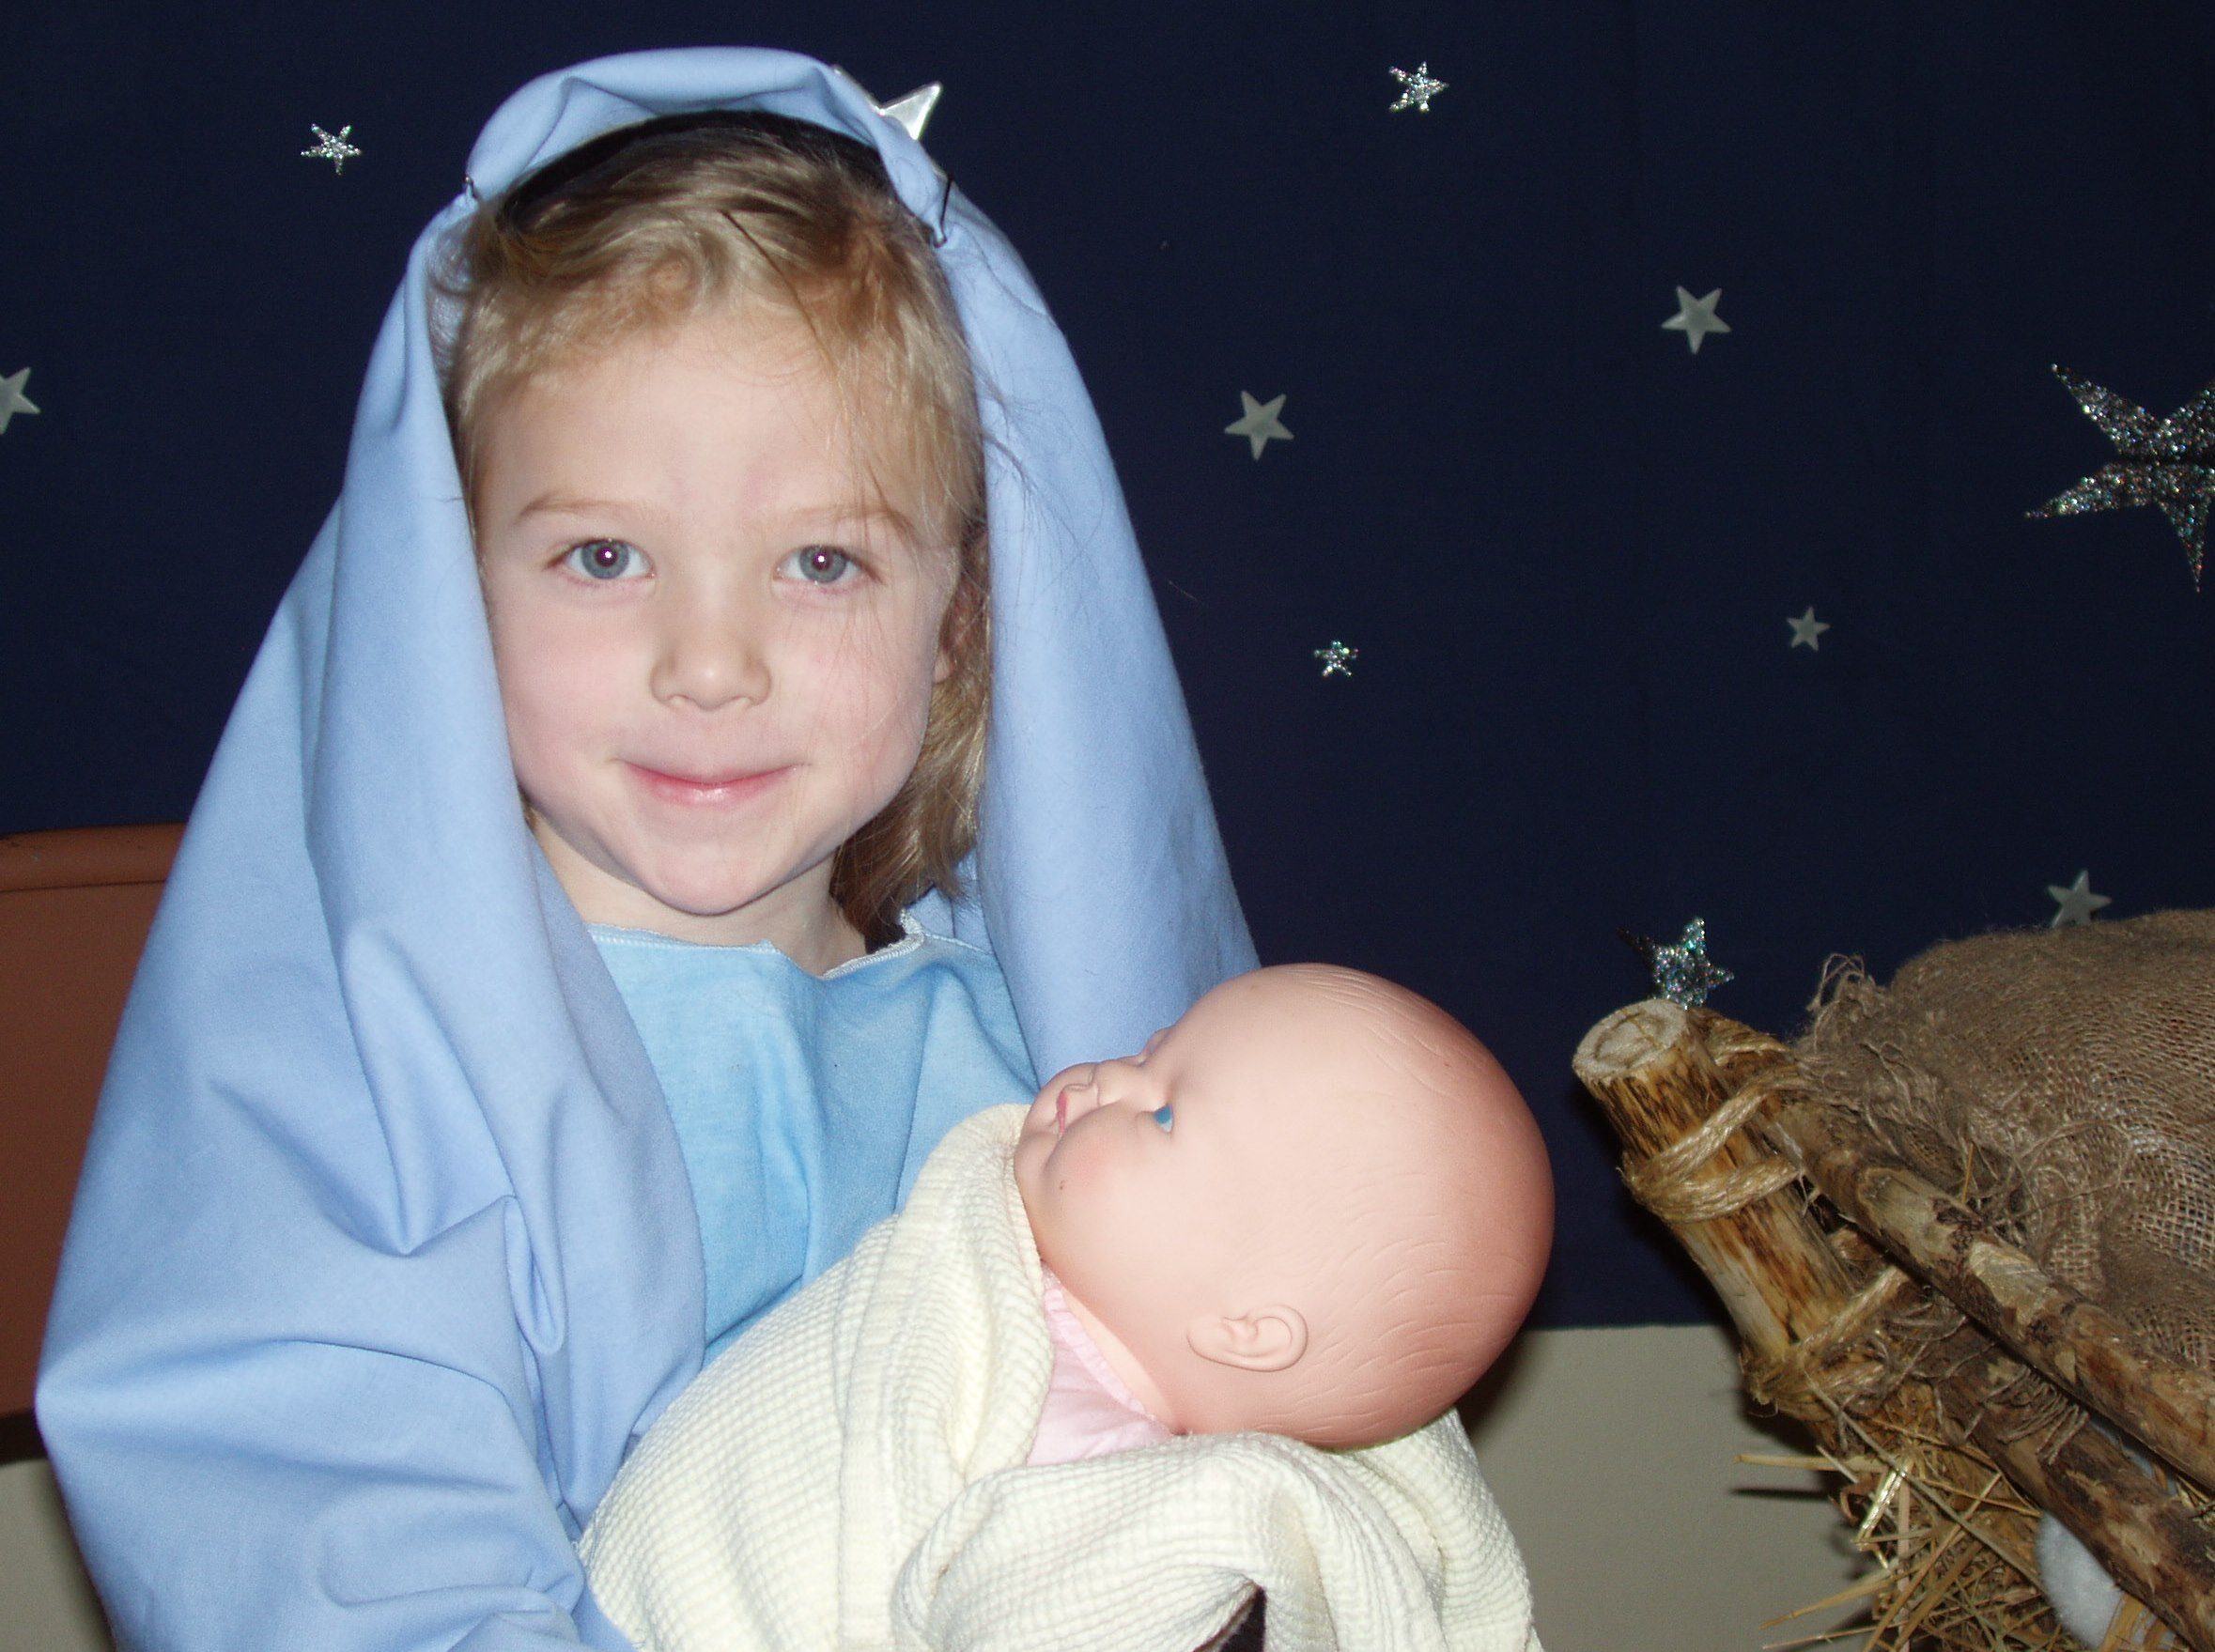 Preschooler dressed up as Mary in Someone Has a Birthday.